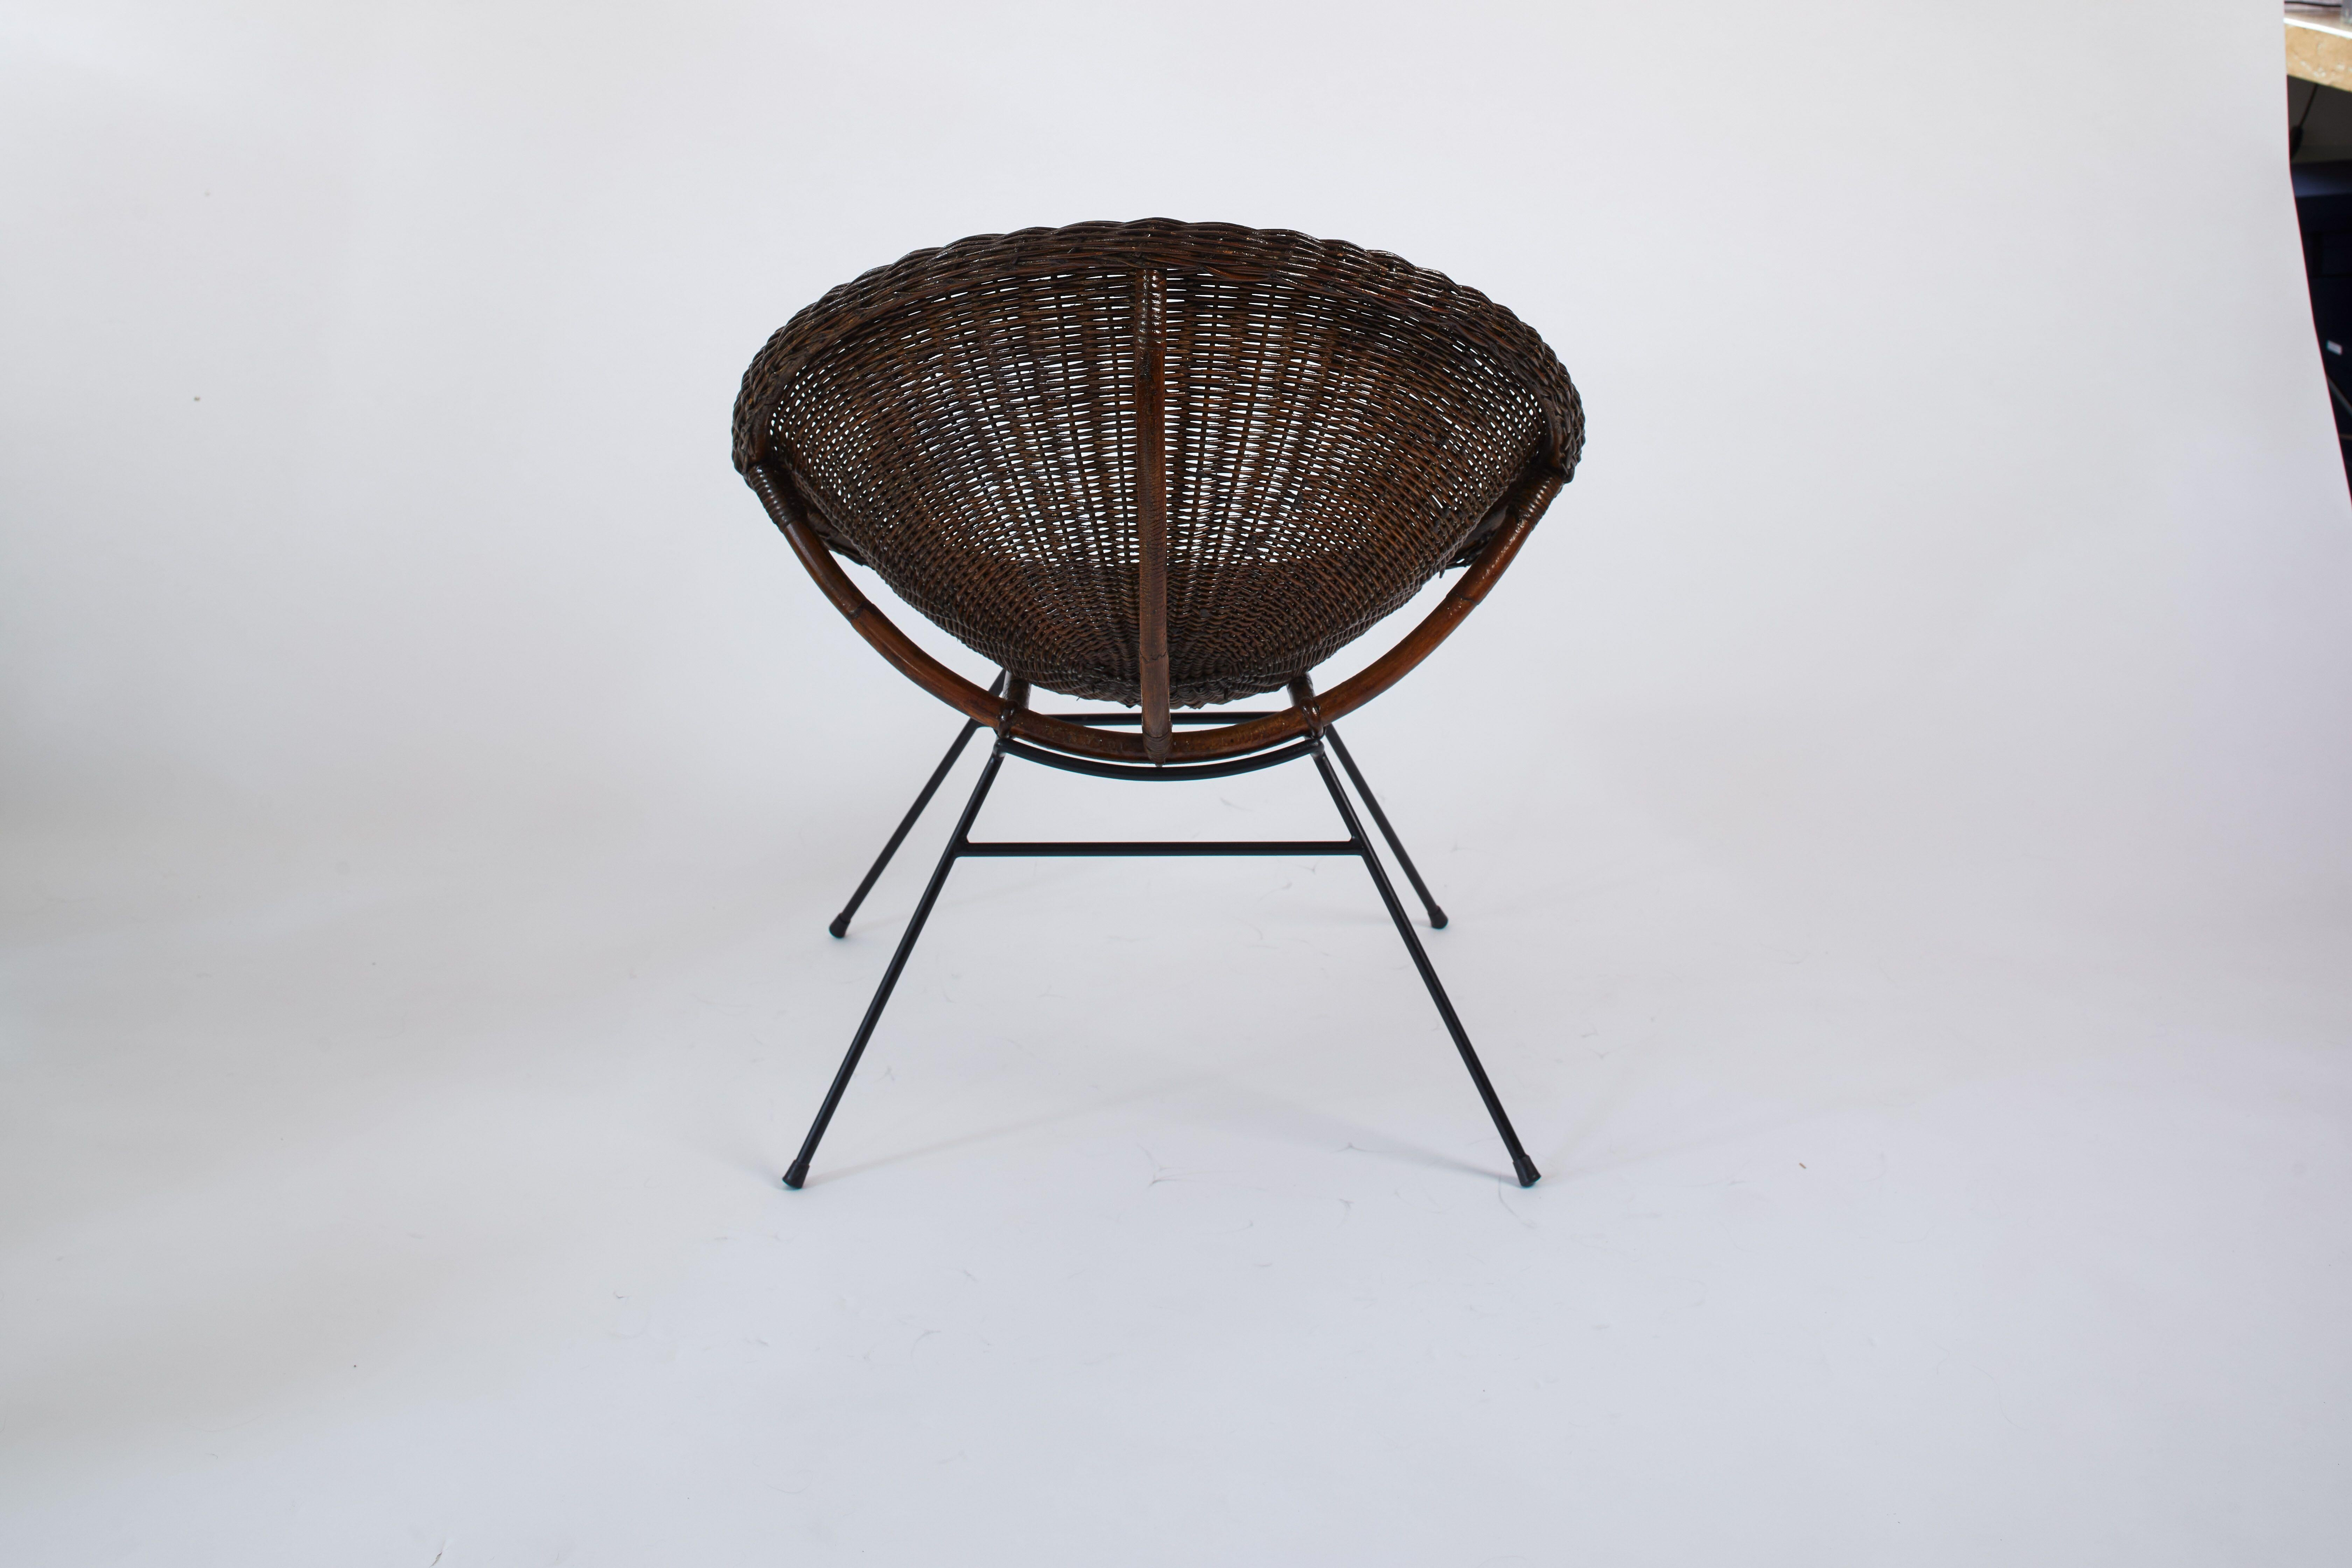 Stupendous 1950S French Pair Of Saucer Chairs In Rattan And Black Metal Forskolin Free Trial Chair Design Images Forskolin Free Trialorg